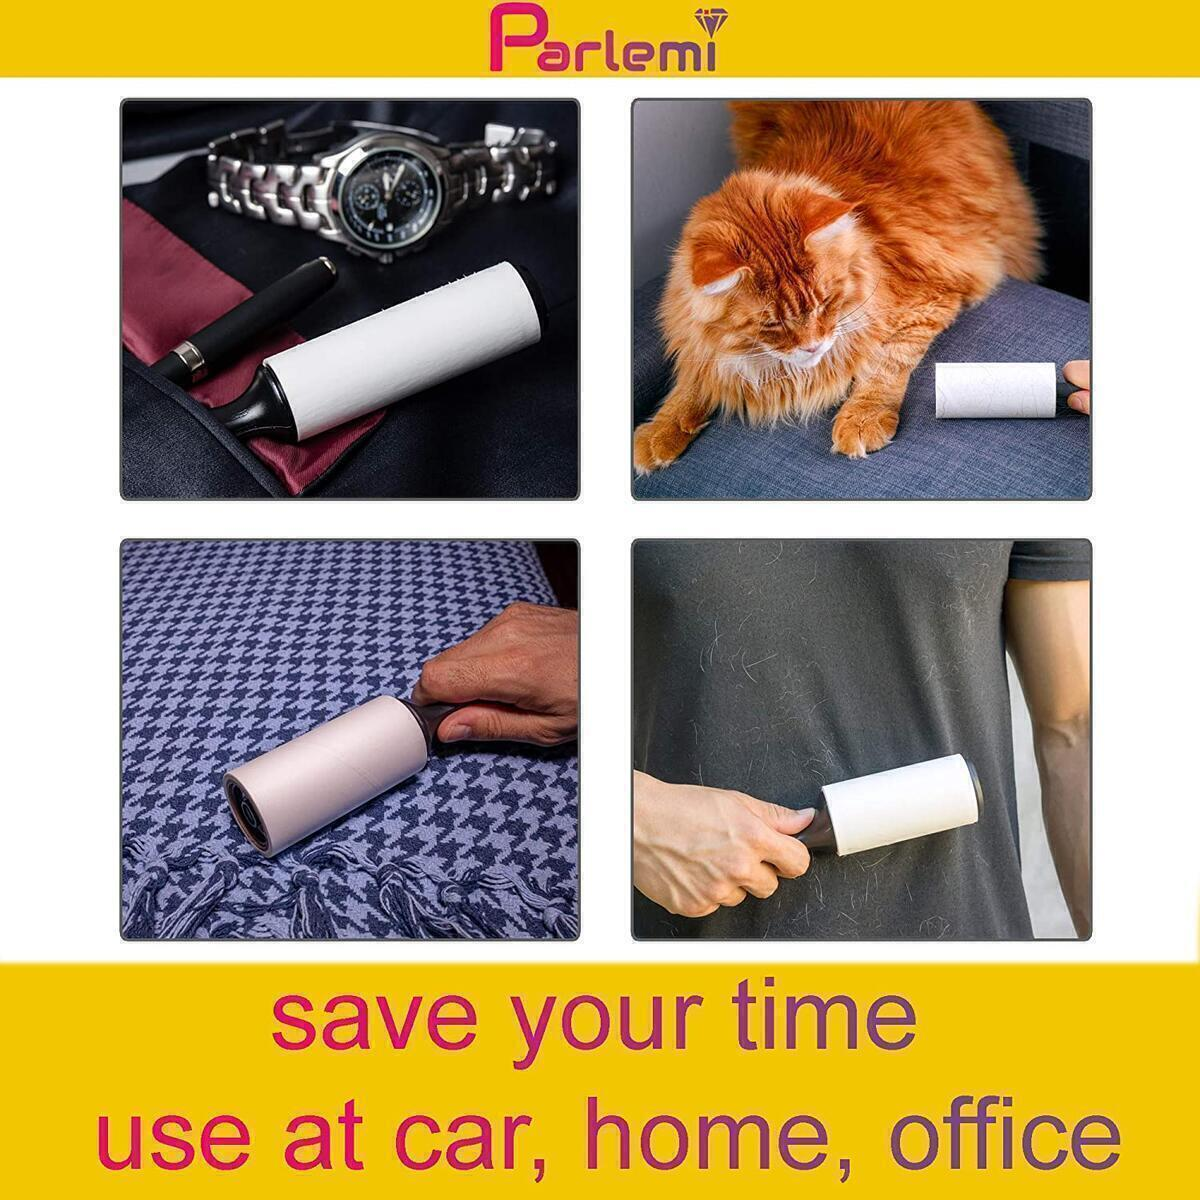 Parlemi Lint Rollers for Pet Hair Extra Sticky - (2 Handles, 4 Refills - 240 Sheets) - Lint Brush Pet Hair Remover - Cat, Dog Hair Lint Roller - Clothes, Furniture, Carpet, Floor Dust and Fuzz Remover